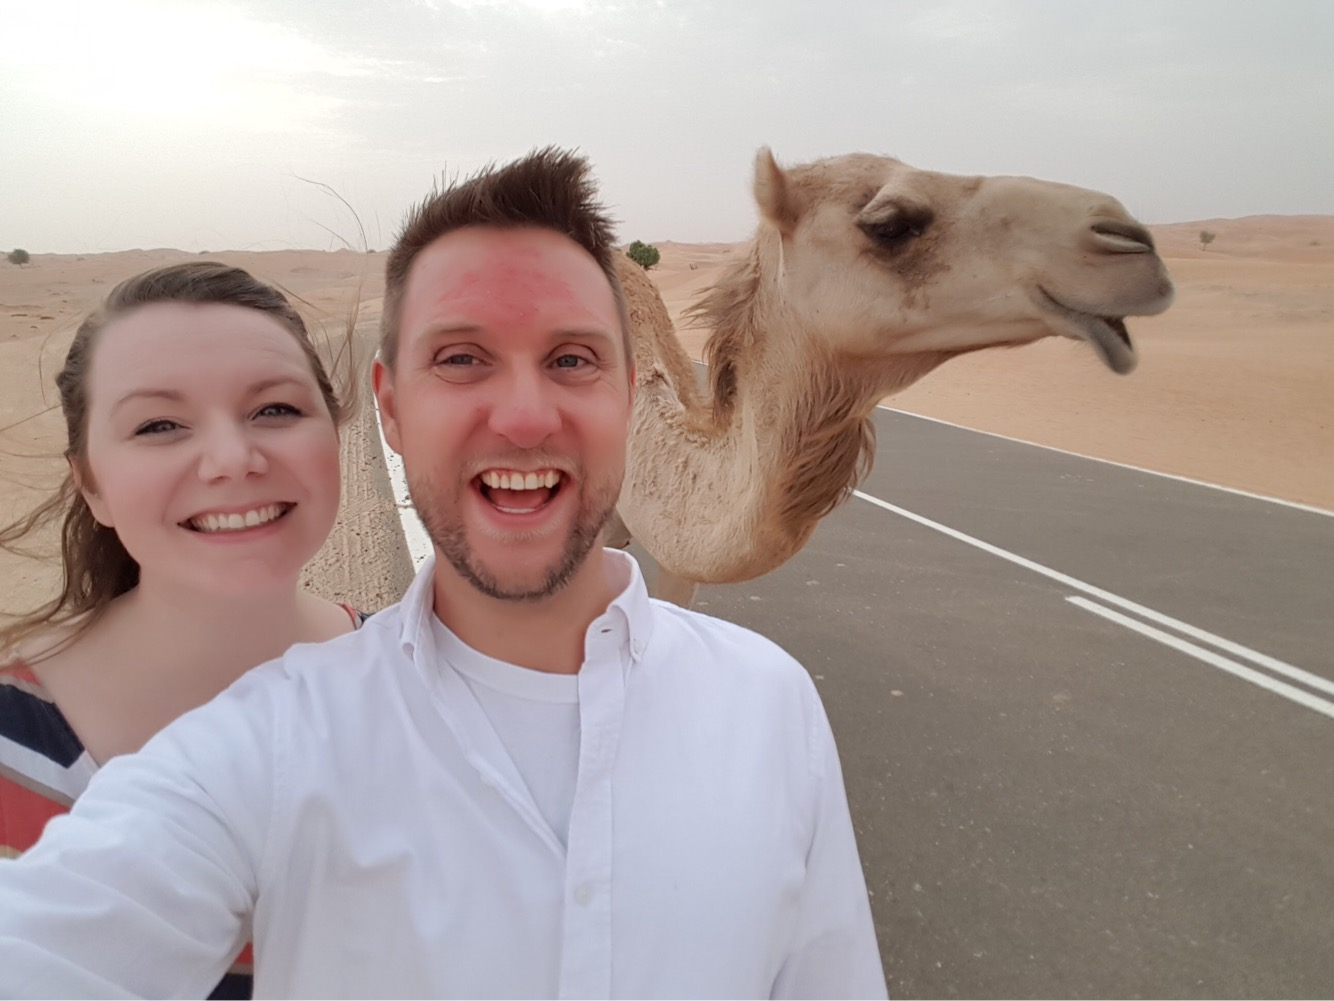 The Daughertys pose with a camel while on one of their numerous excursions.